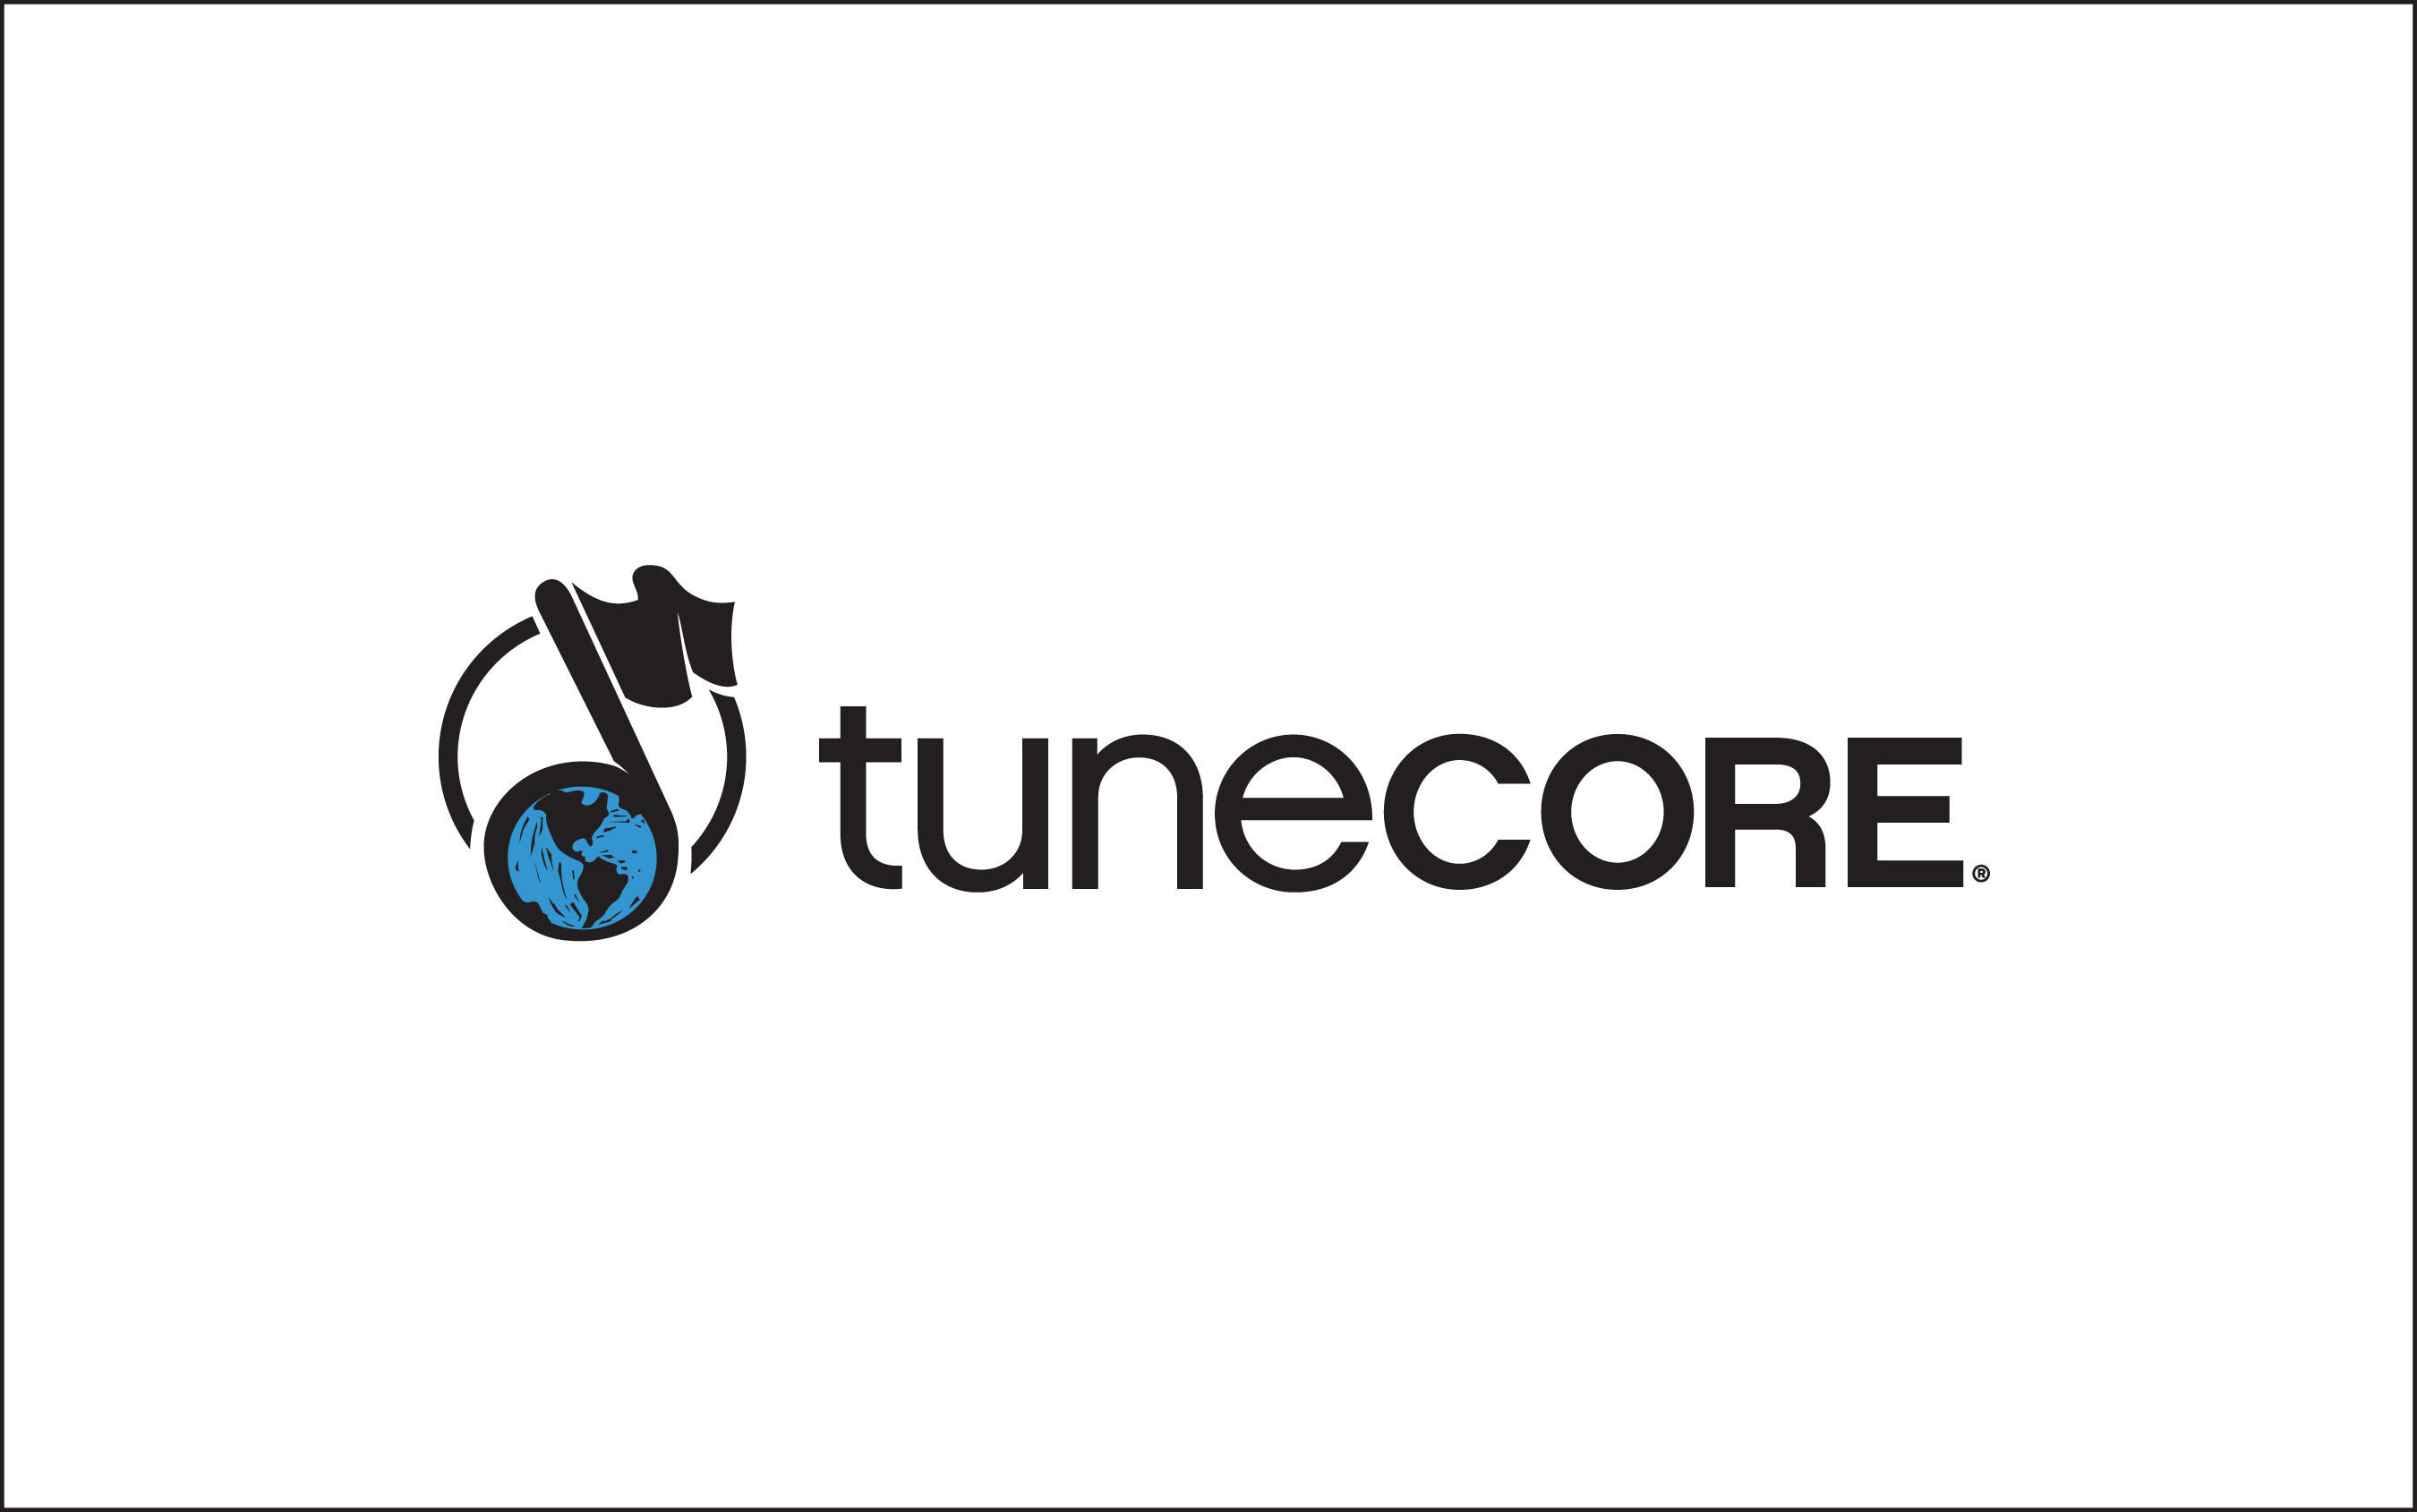 TuneCore brings more music to more people, while helping musicians and songwriters increase money-earning opportunities and take charge of their own careers. The company has one of the highest artist revenue-generating music catalogs in the world, earning TuneCore Artists $504 million on 12 billion streams and downloads since inception. TuneCore Music Distribution helps artists, labels and managers sell their music through iTunes, Amazon MP3, Spotify and other major download and streaming sites while retaining 100% of their sales revenue. TuneCore Music Publishing Administration assists songwriters by administering their compositions through licensing, registration and worldwide royalty collection, including YouTube monetization.